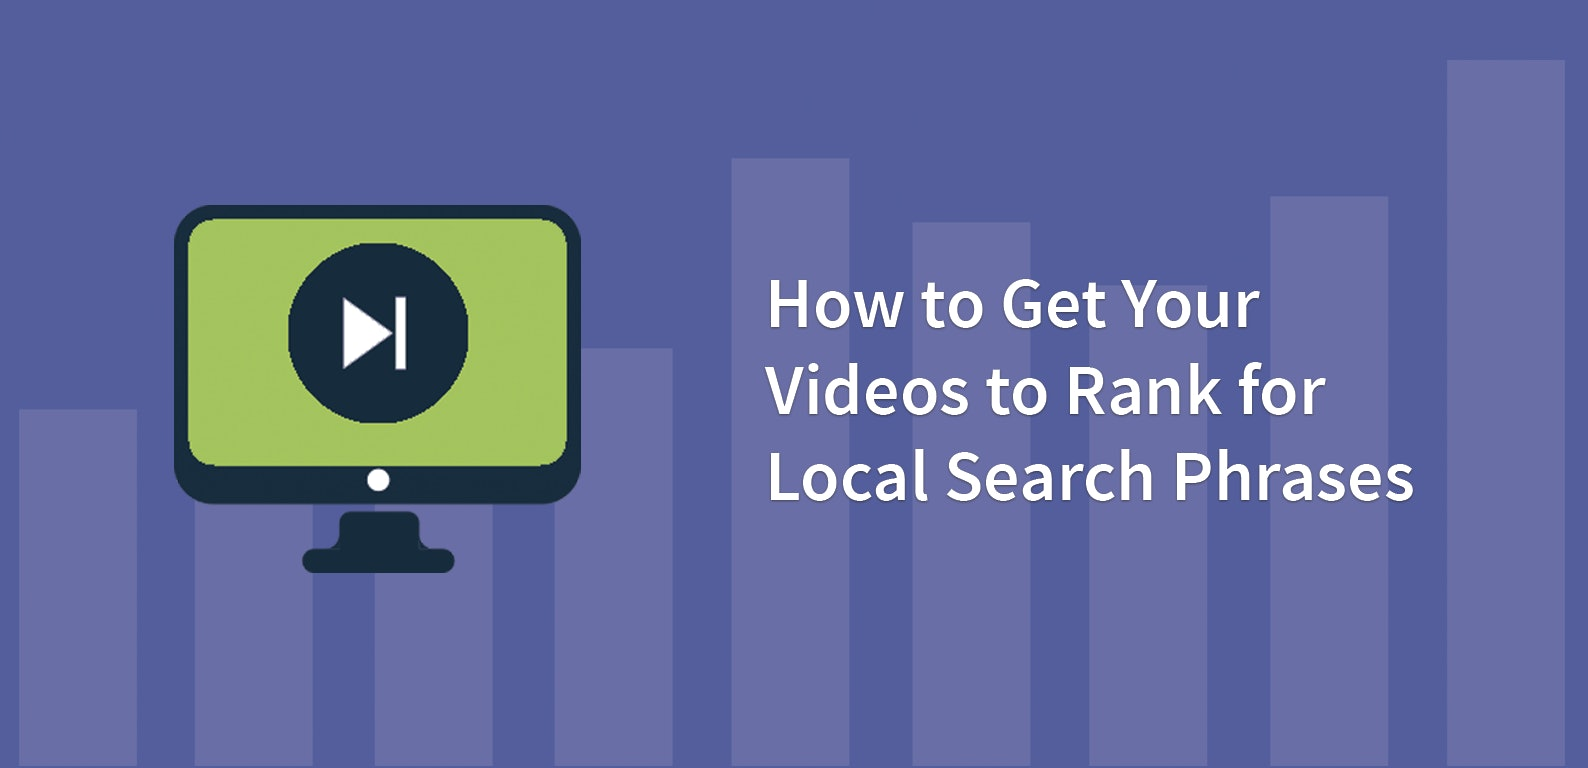 How to Get Your Videos to Rank for Local Search Phrases